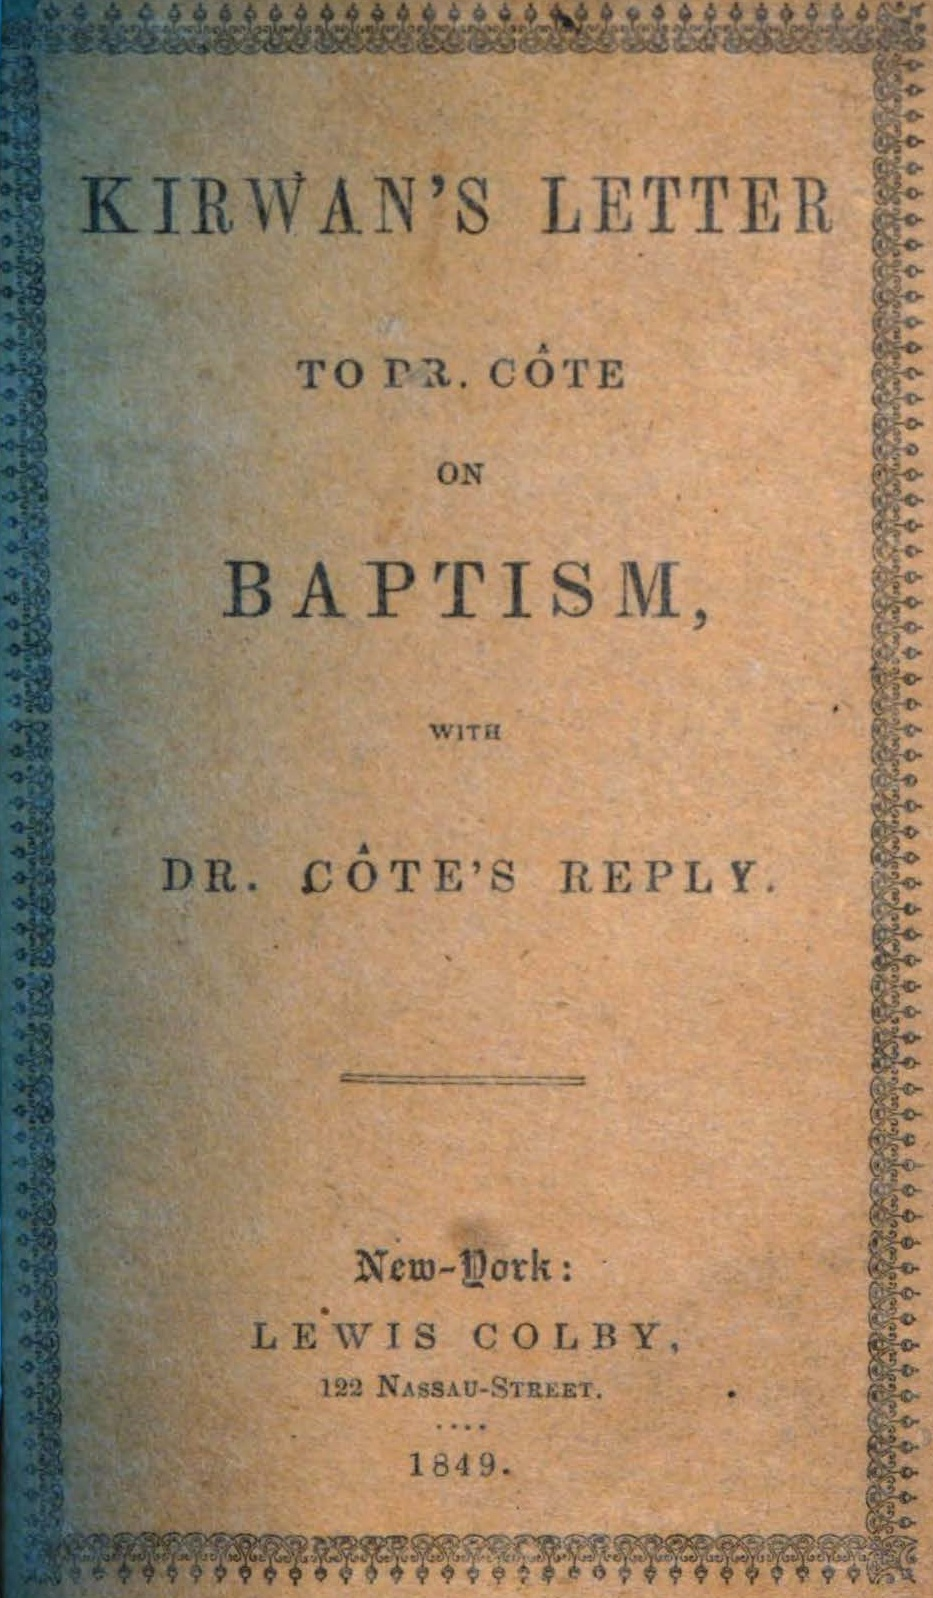 Murray, Nicholas, Kirwan's Letter to Dr. Cote on Baptism Title Page.jpg